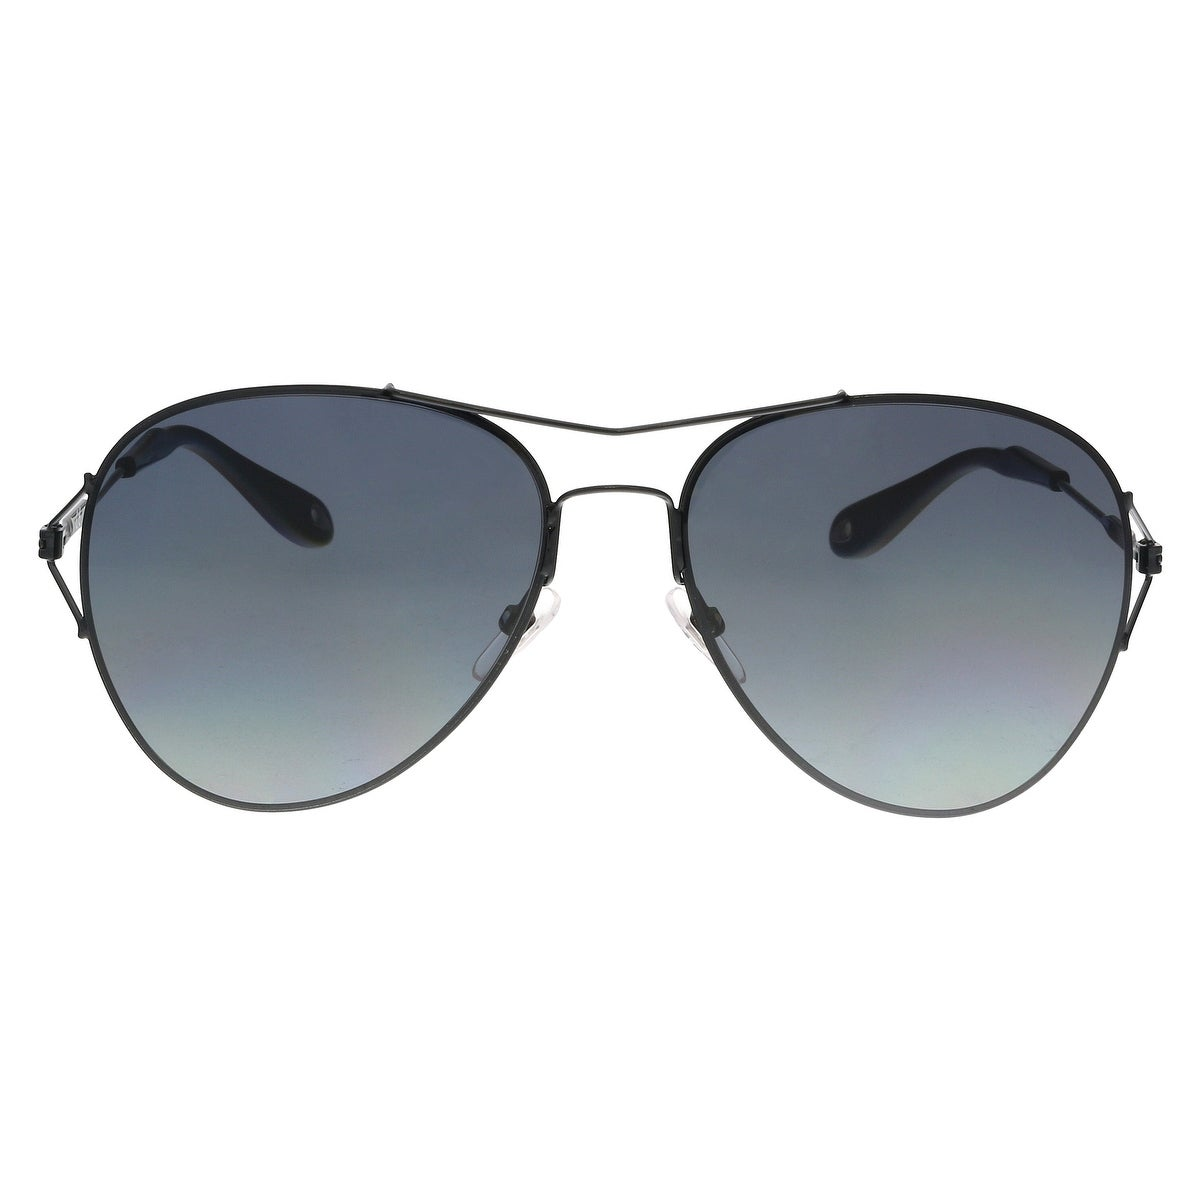 bcc3fba3e Shop Givenchy GV7005/S 006 HD Black Aviator Sunglasses - No Size - Free  Shipping Today - Overstock - 23600445